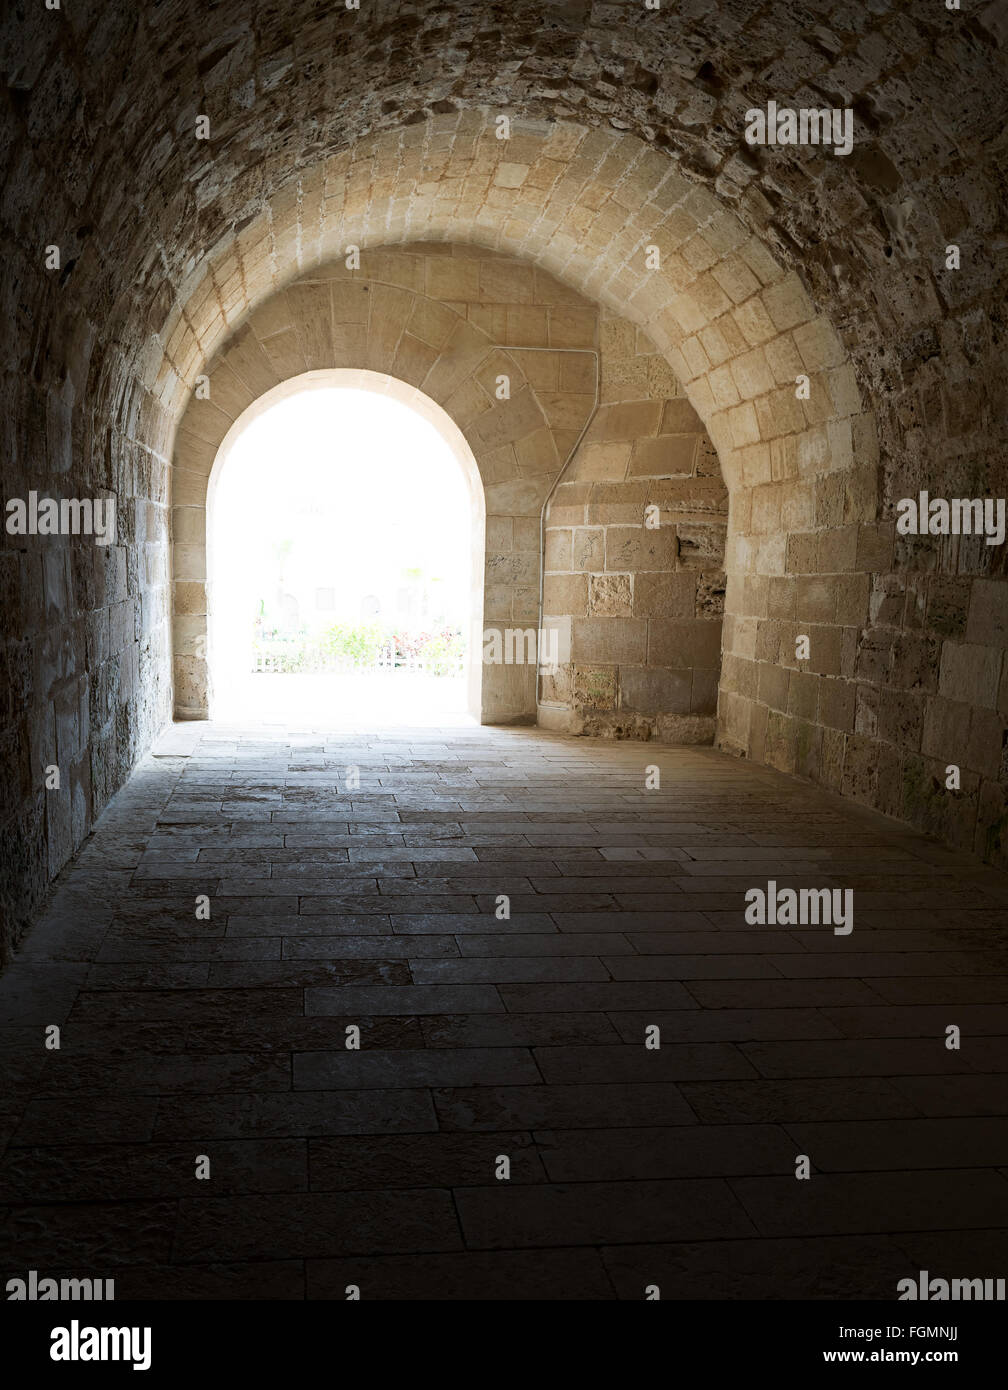 Vaulted Corridor leading to the courtyard of Alexandria Castle - Stock Image